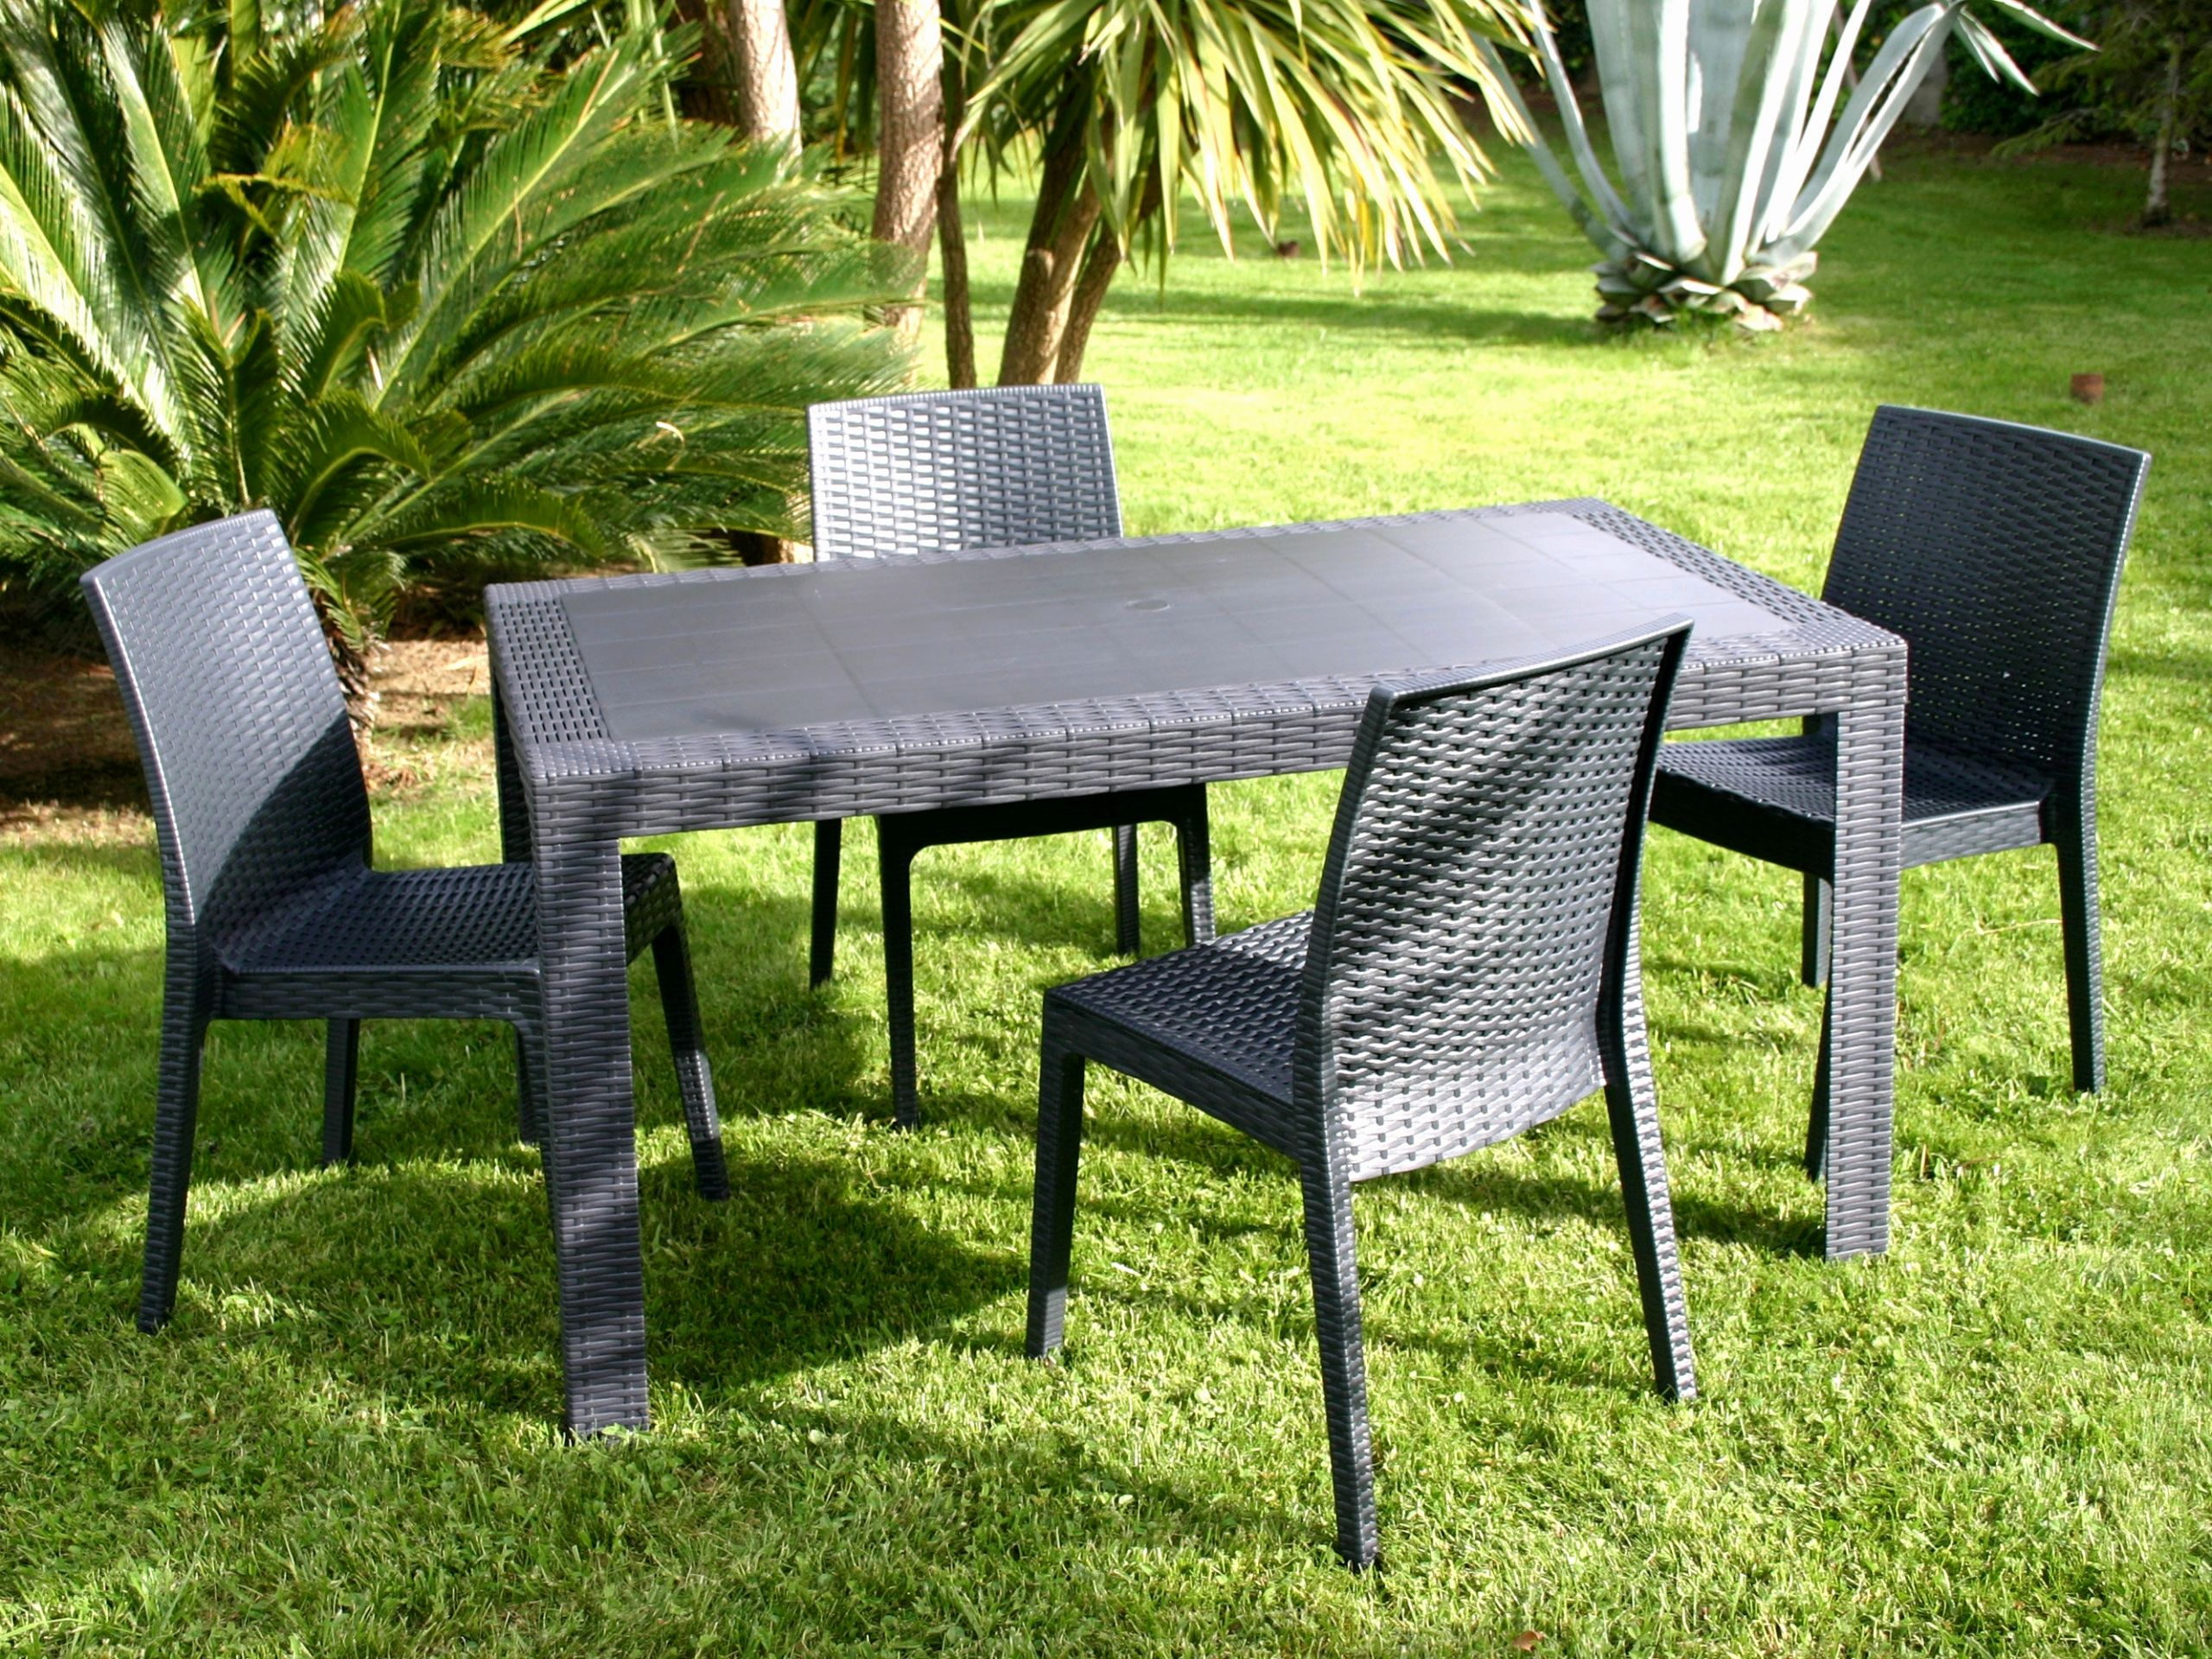 Table Exterieur Carrefour Best Of Catalogue Carrefour Abris ... avec Abris De Jardin Carrefour